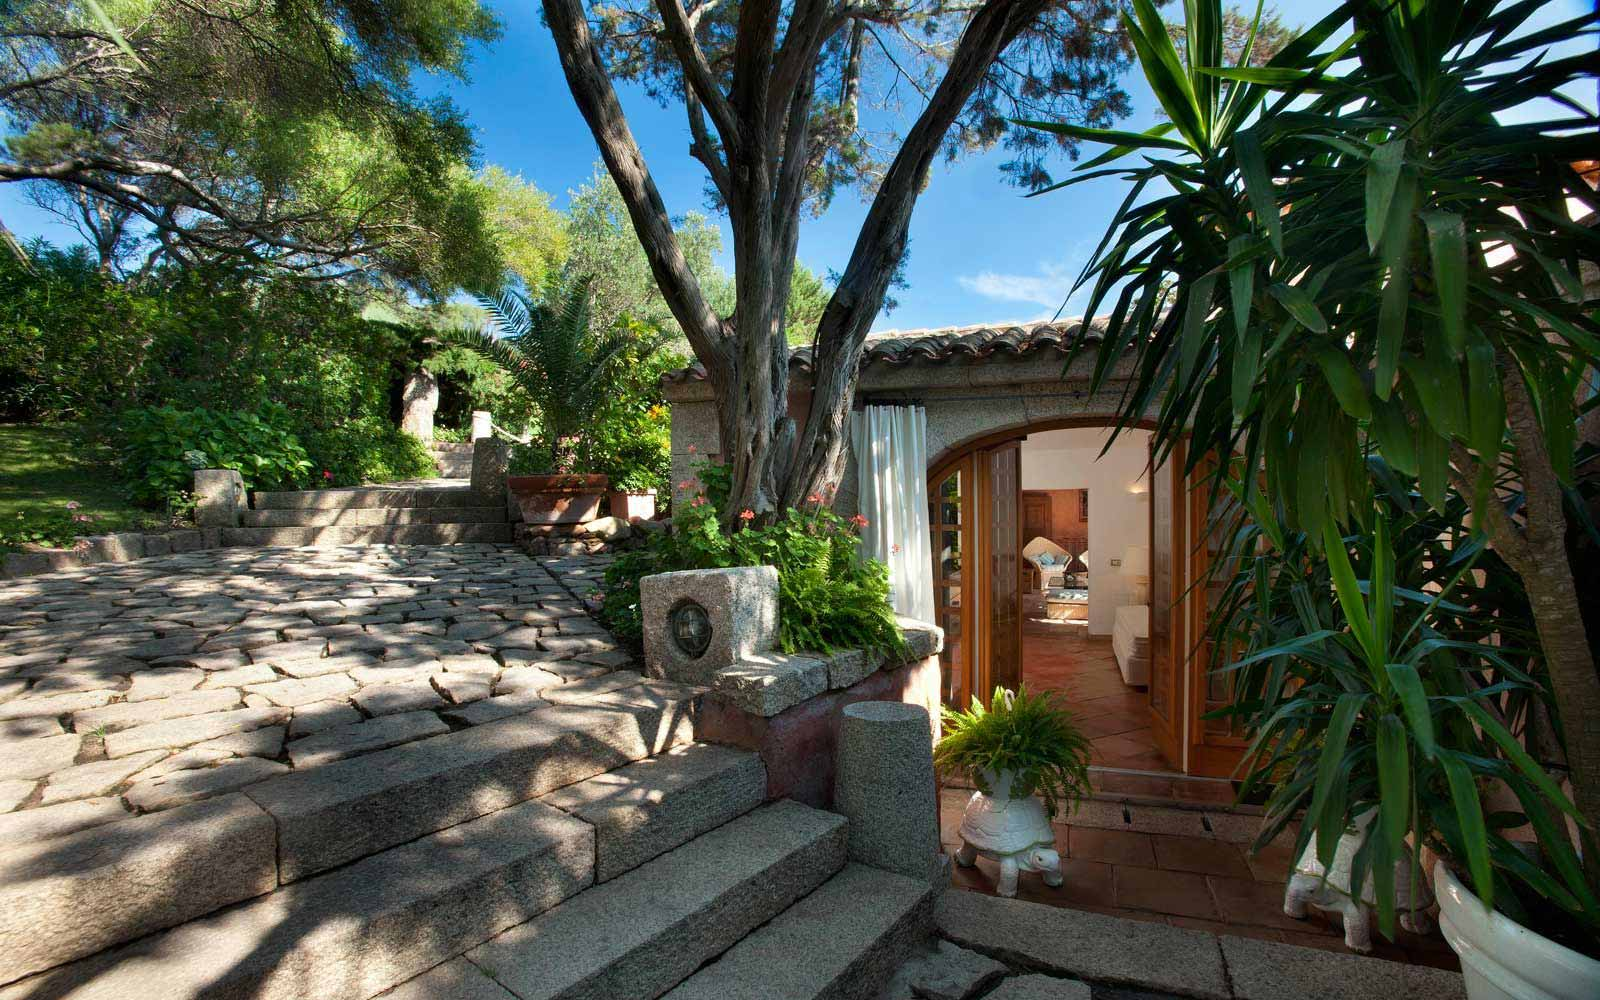 Villa Le Violette: room / property / locale photo. Image 4